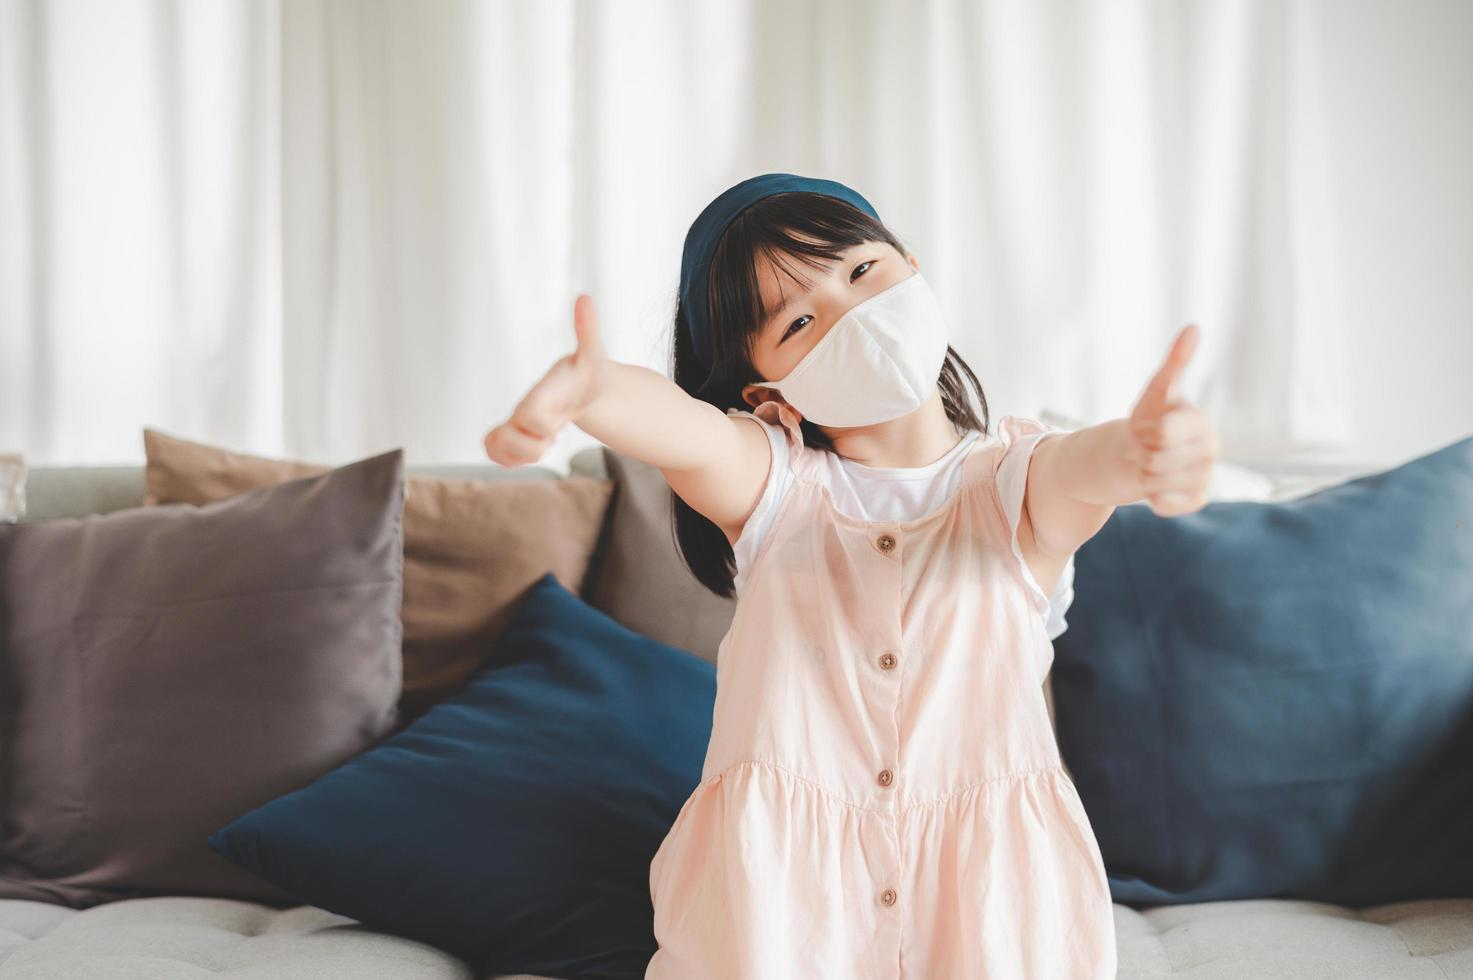 Give giving thumbs up while wearing mask photo